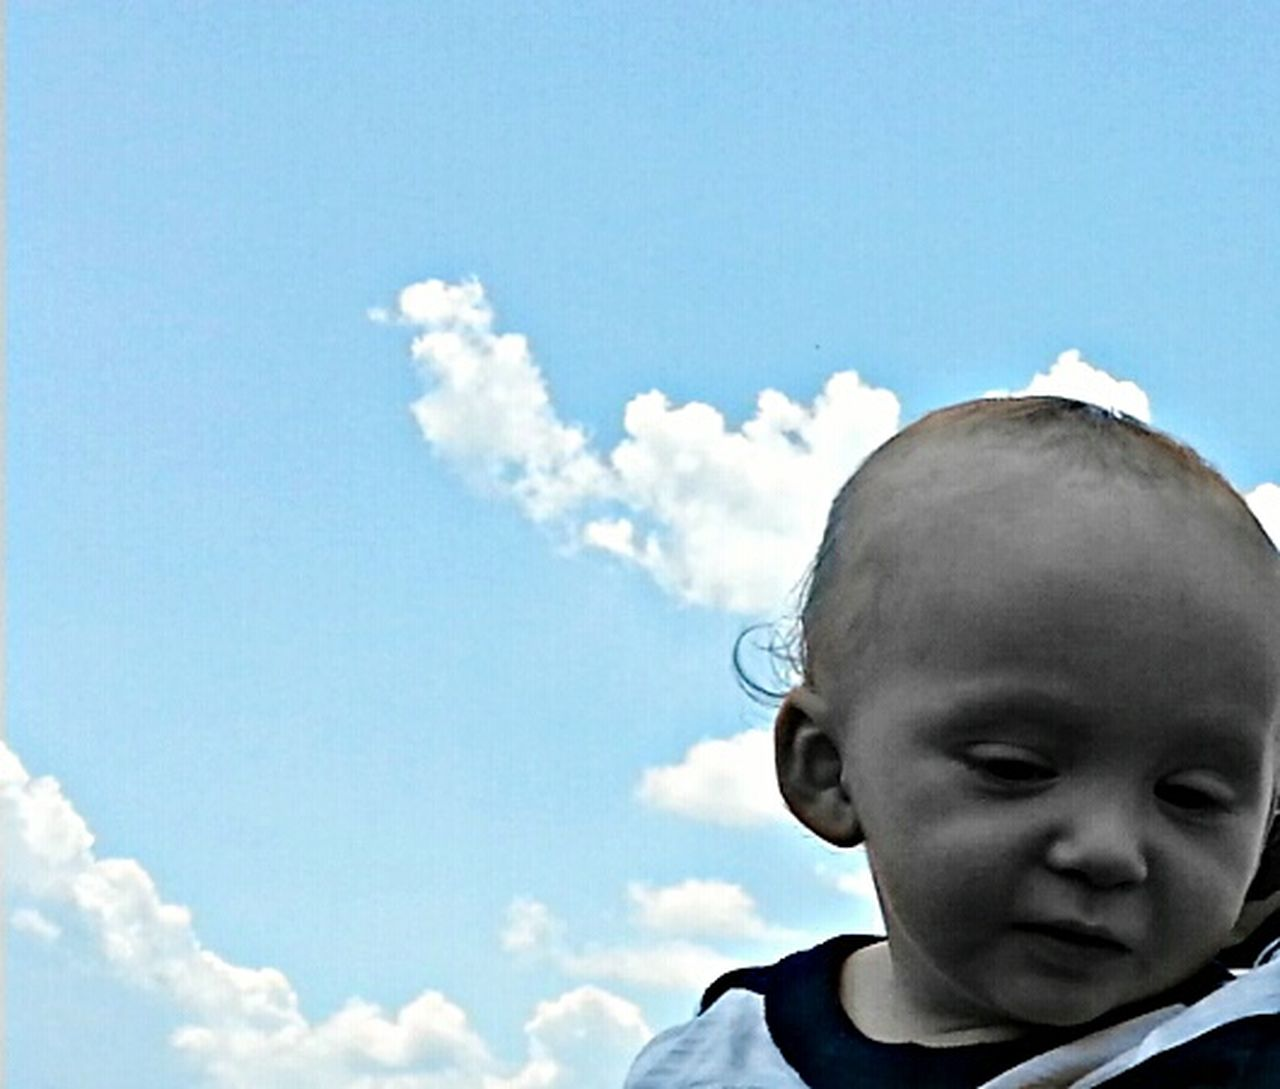 The Portraitist - 2015 EyeEm Awards The Moment - 2015 EyeEm Awards My Sweet Baby Boy Sky & Clouds Head In The Clouds Day Dreamer Blue Sky EyeEm Gallery Color Splash Portrait Sweet Day Dreamer, Cobalt Blue by Motorola